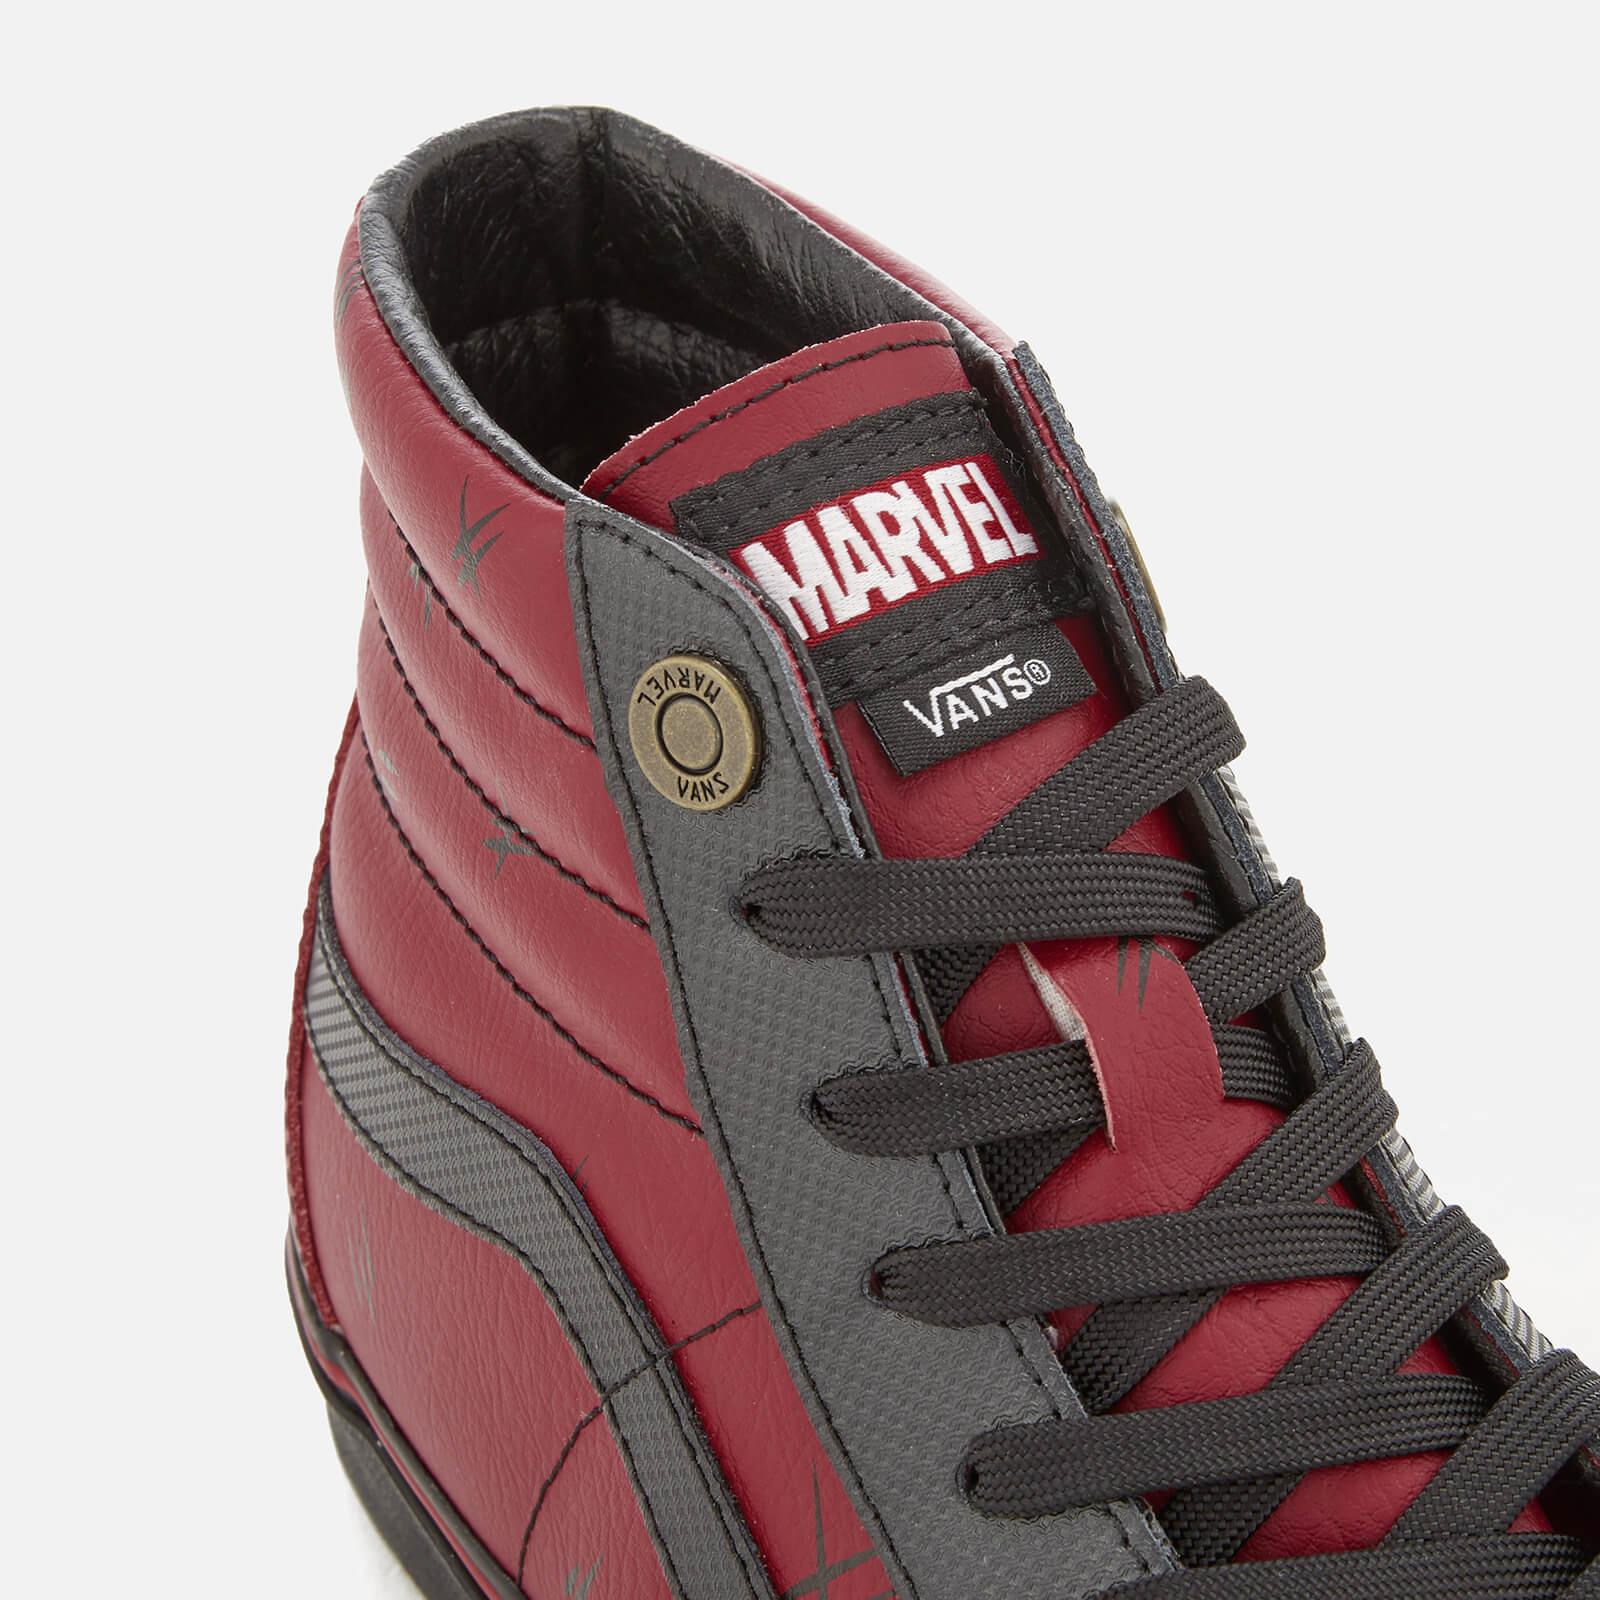 a690b6f9193 Lyst - Vans Marvel Deadpool Sk8 Hi-top Trainers in Red for Men